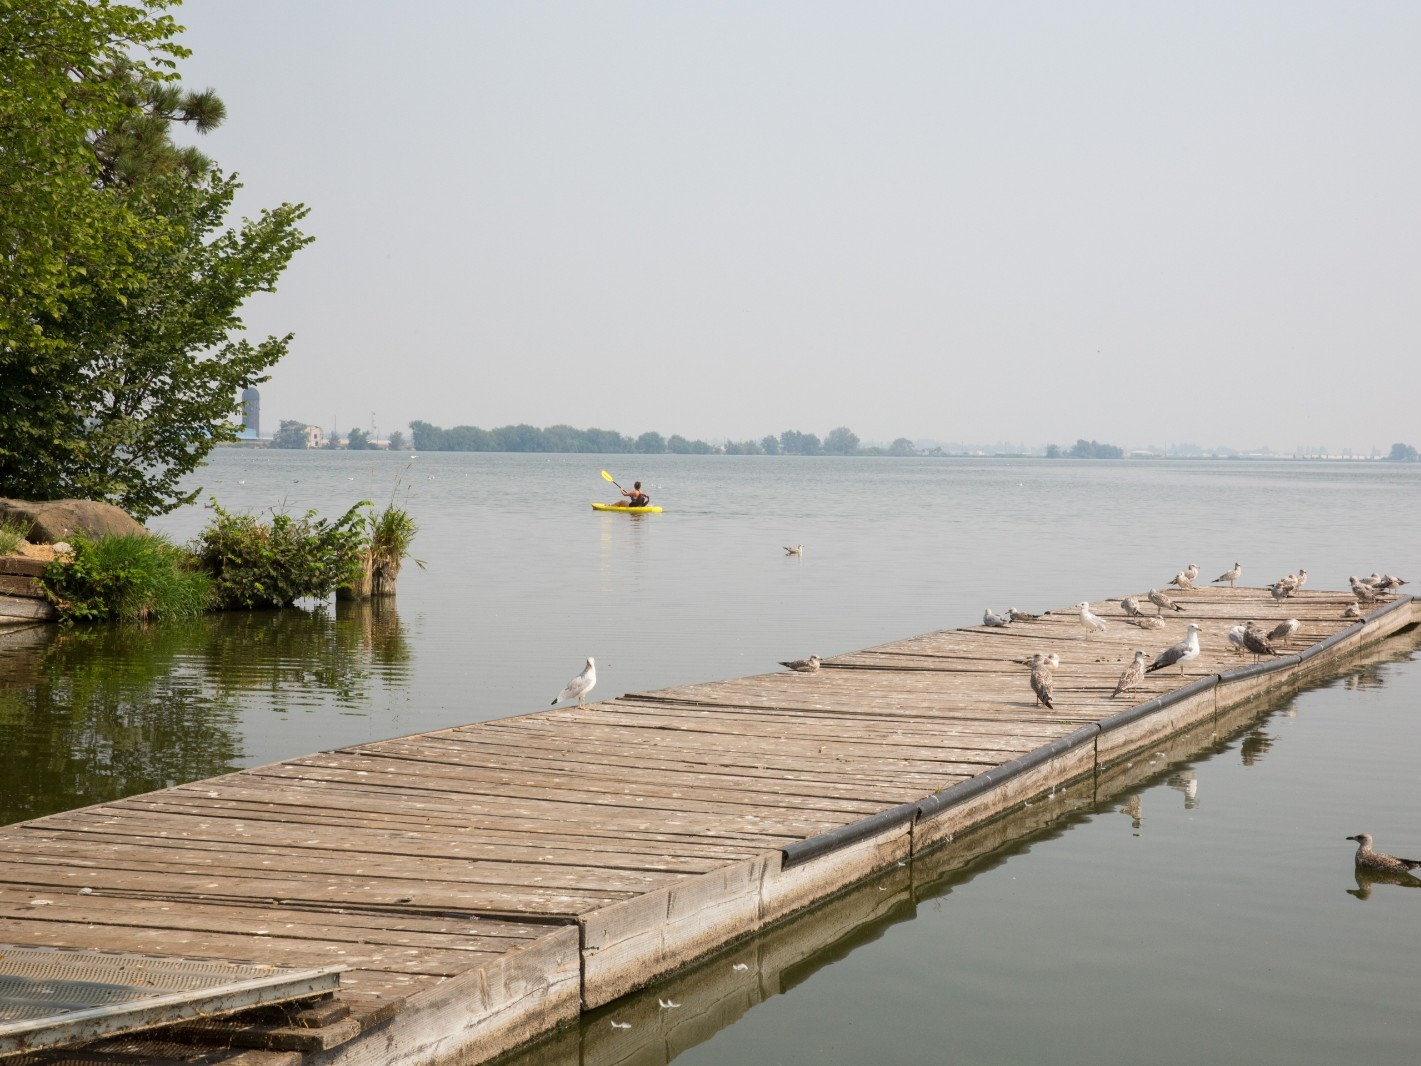 A boardwalk extends into a lake.